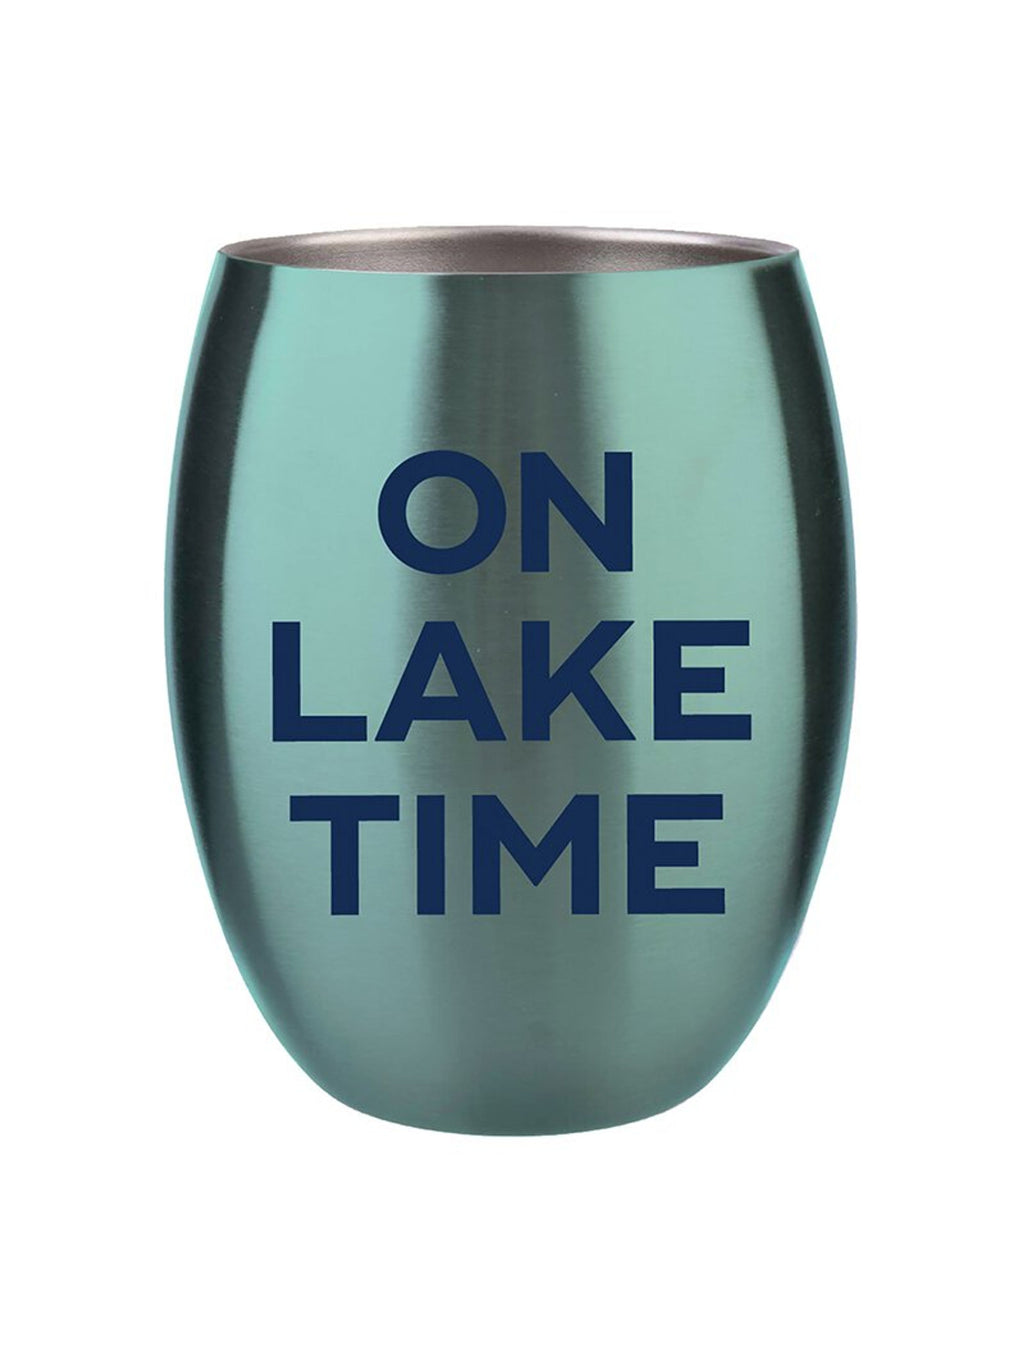 On Lake Time Stainless Steel Wine Tumbler